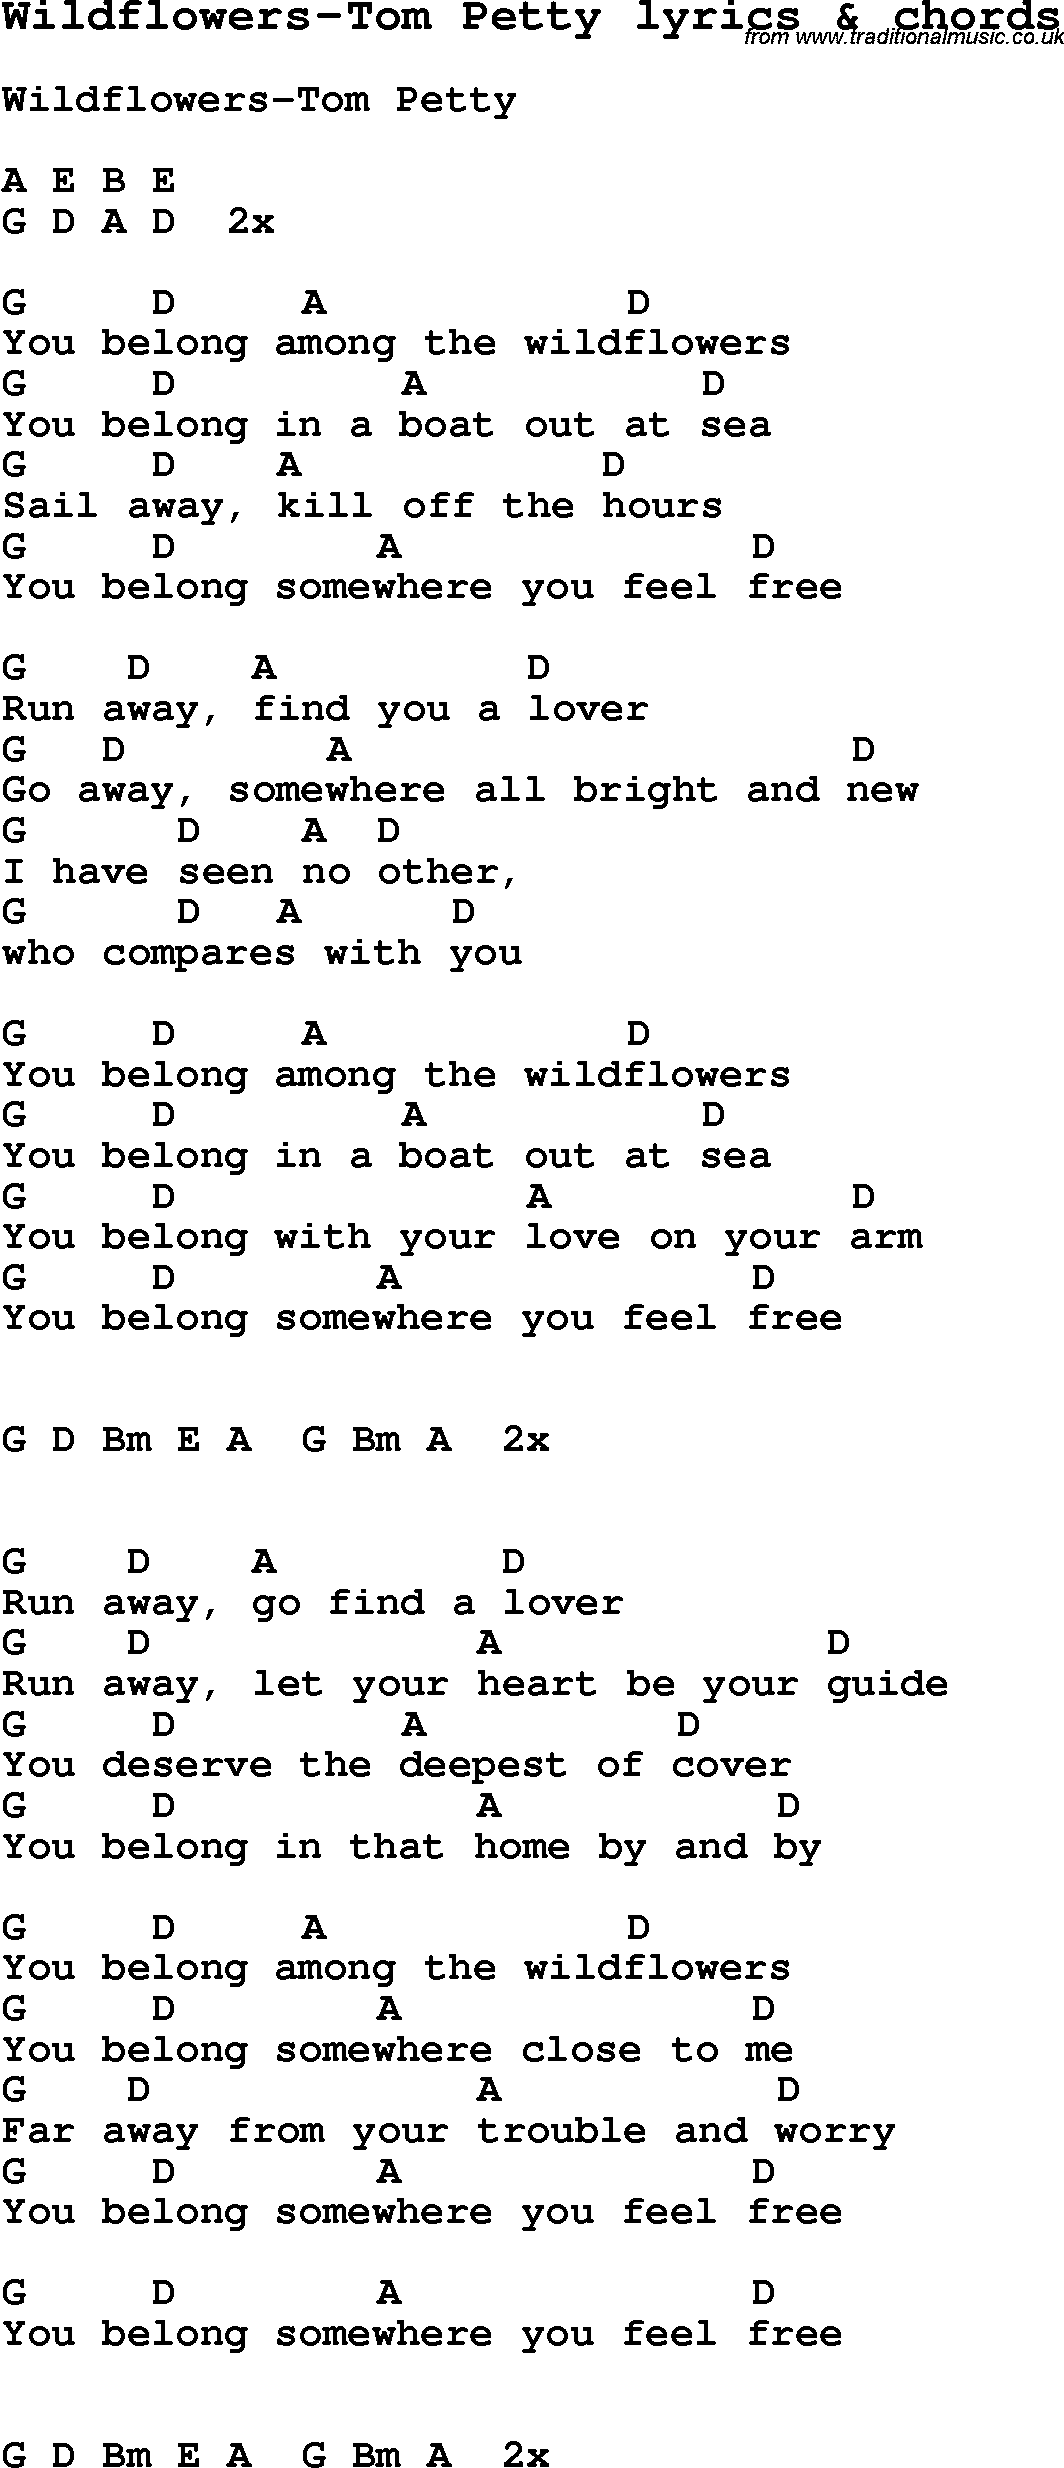 Tomm Petty Wilfllowers Love Song Lyrics For Wildflowers Tom Petty